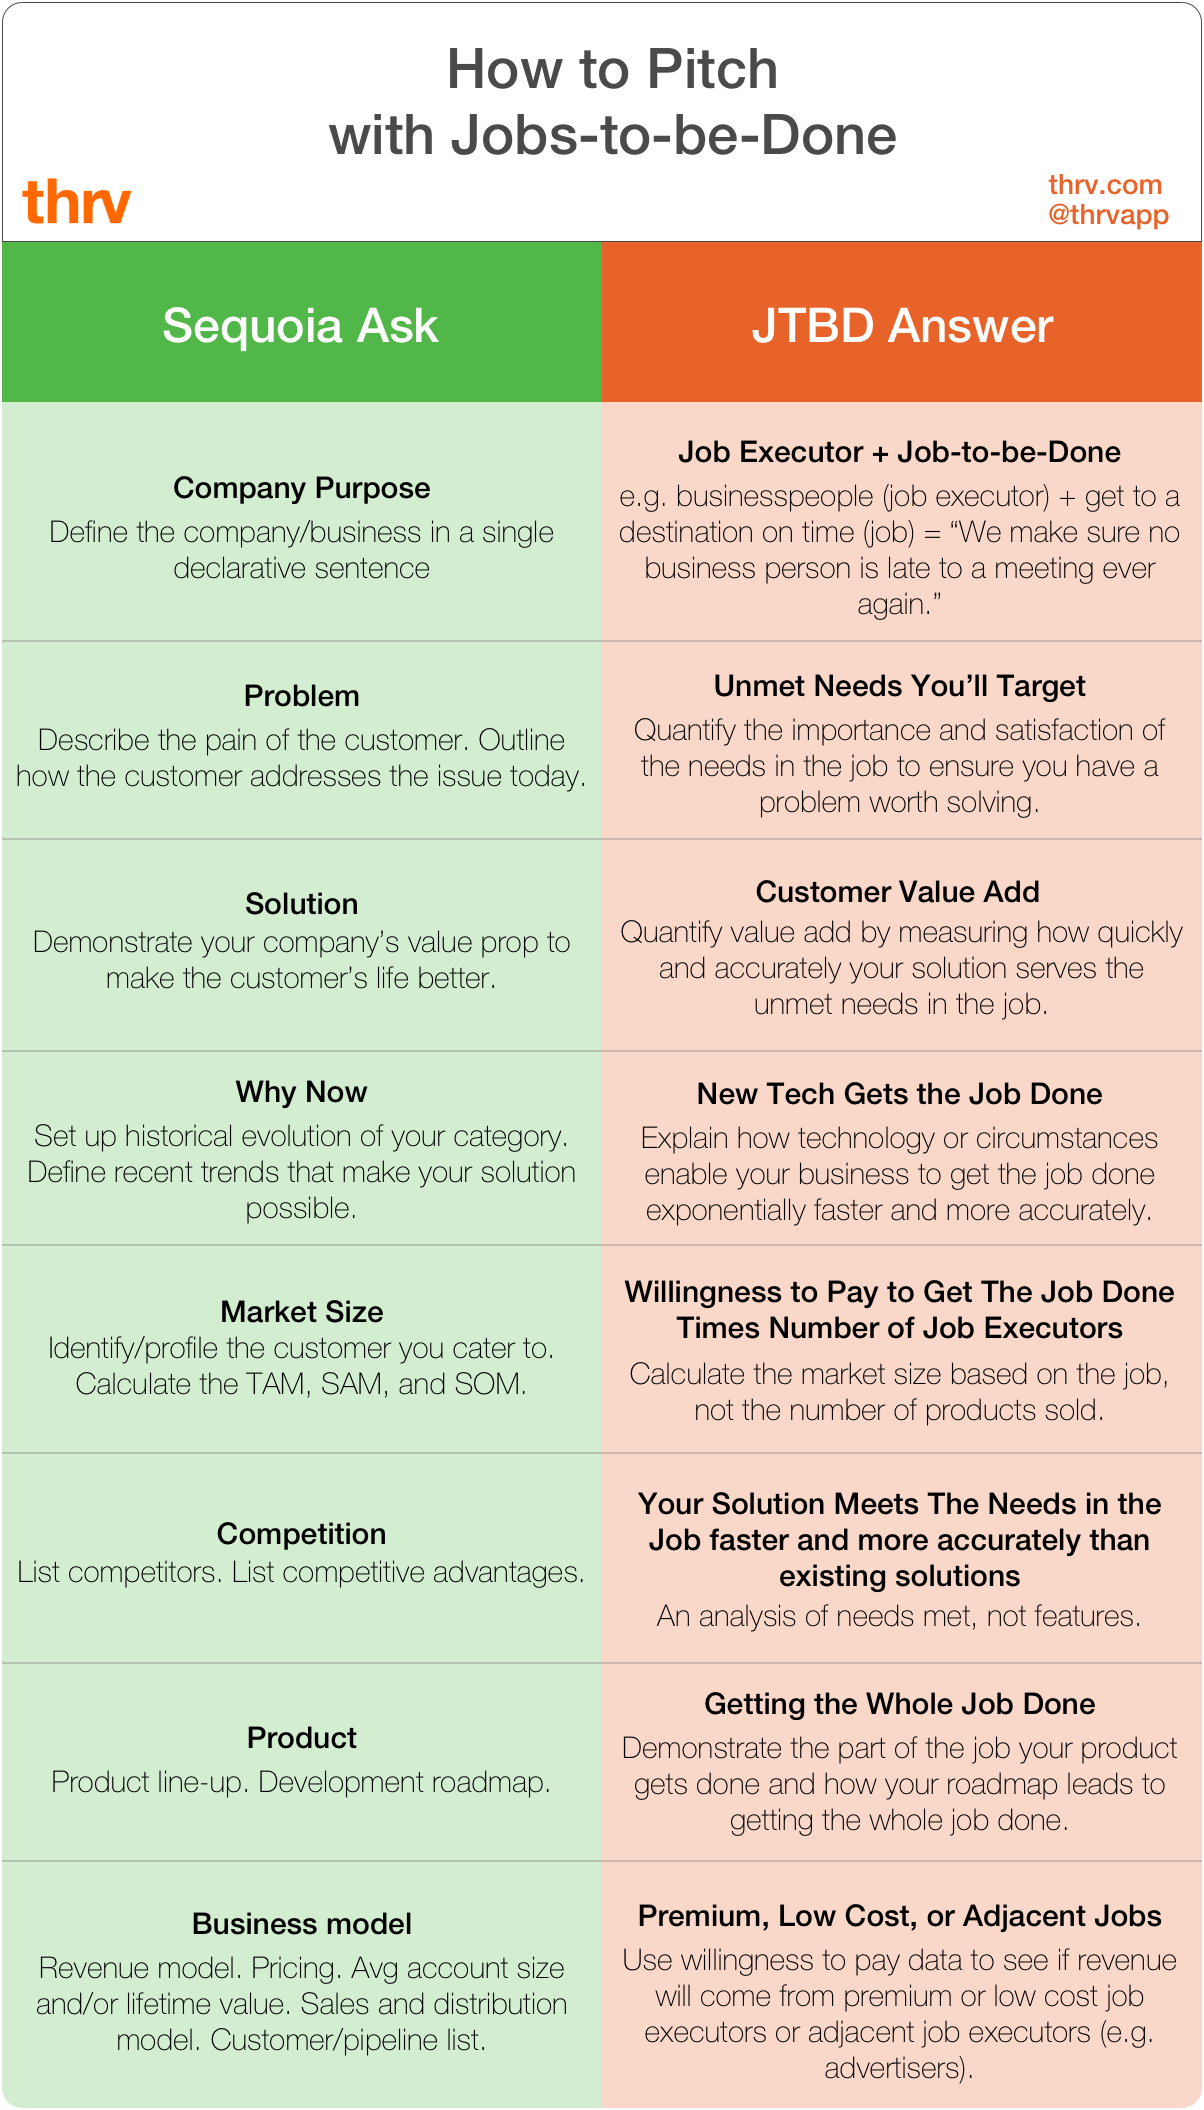 how to pitch with jobs-to-be-done